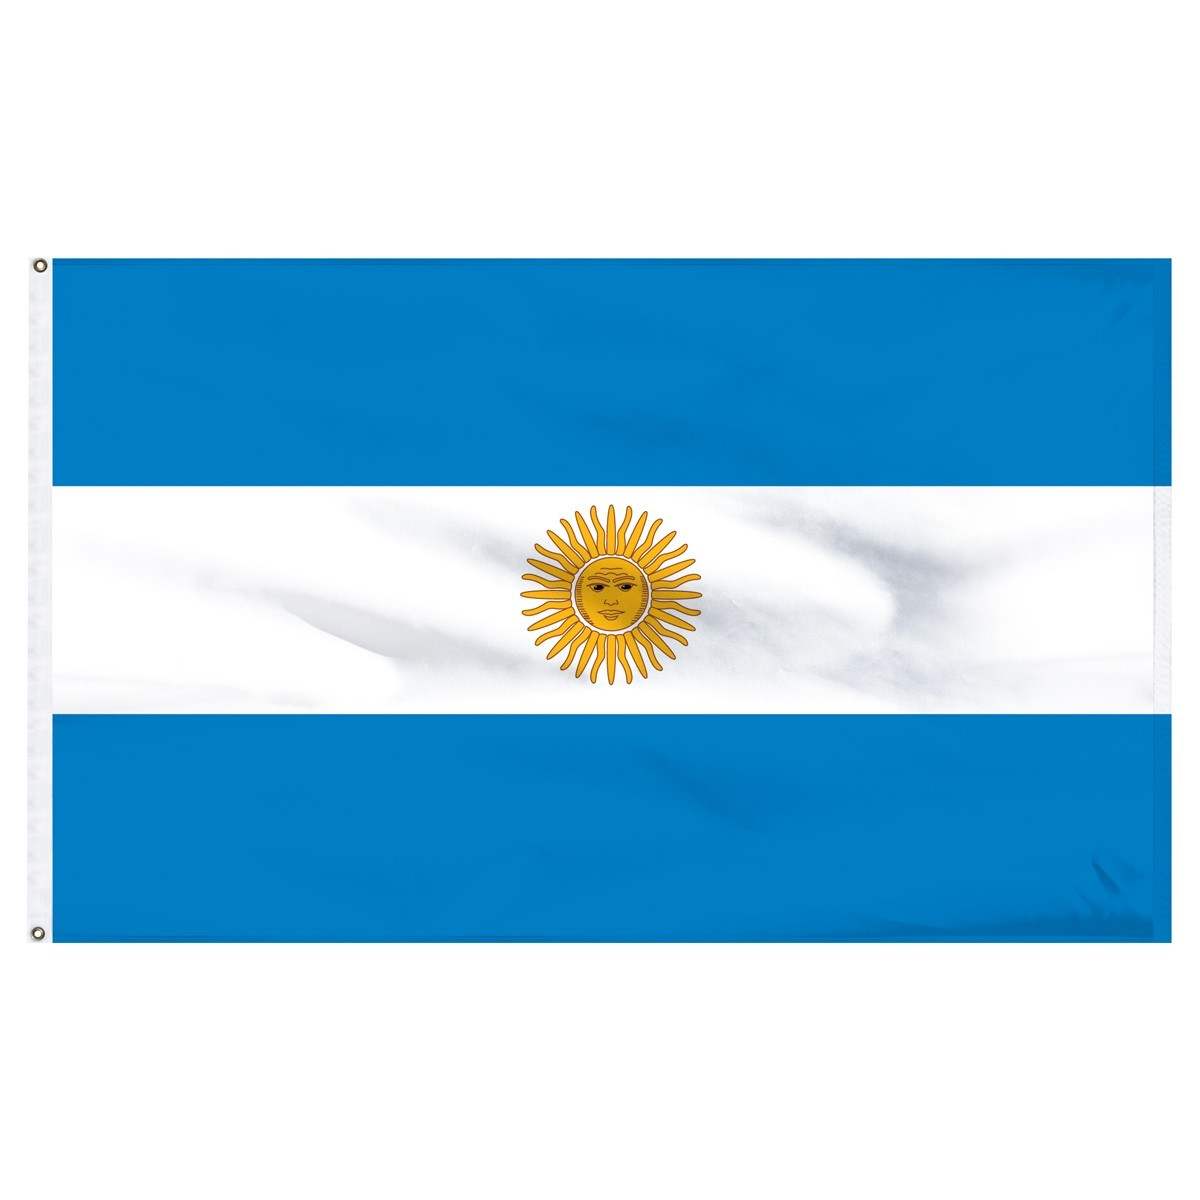 Argentina 4' x 6' Outdoor Nylon Country Flag